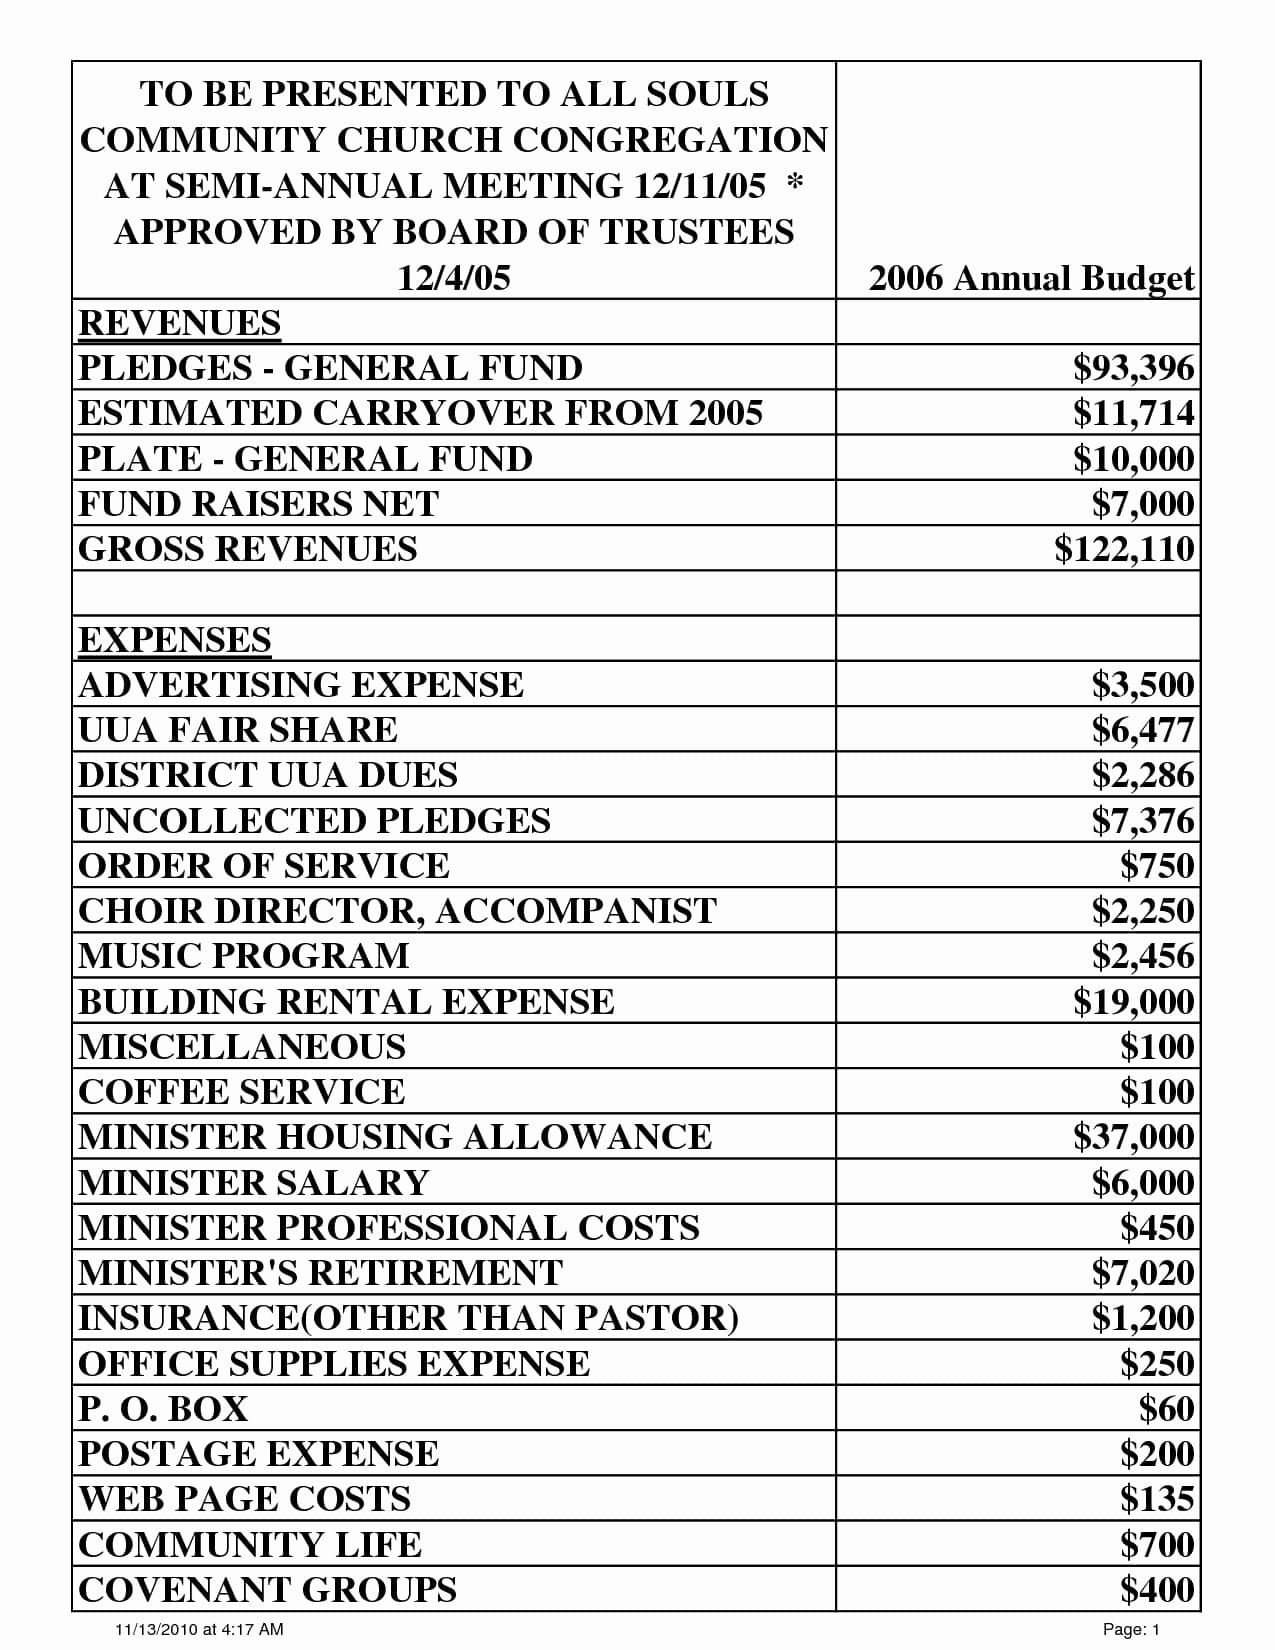 Church Financial Statements Template In With Images